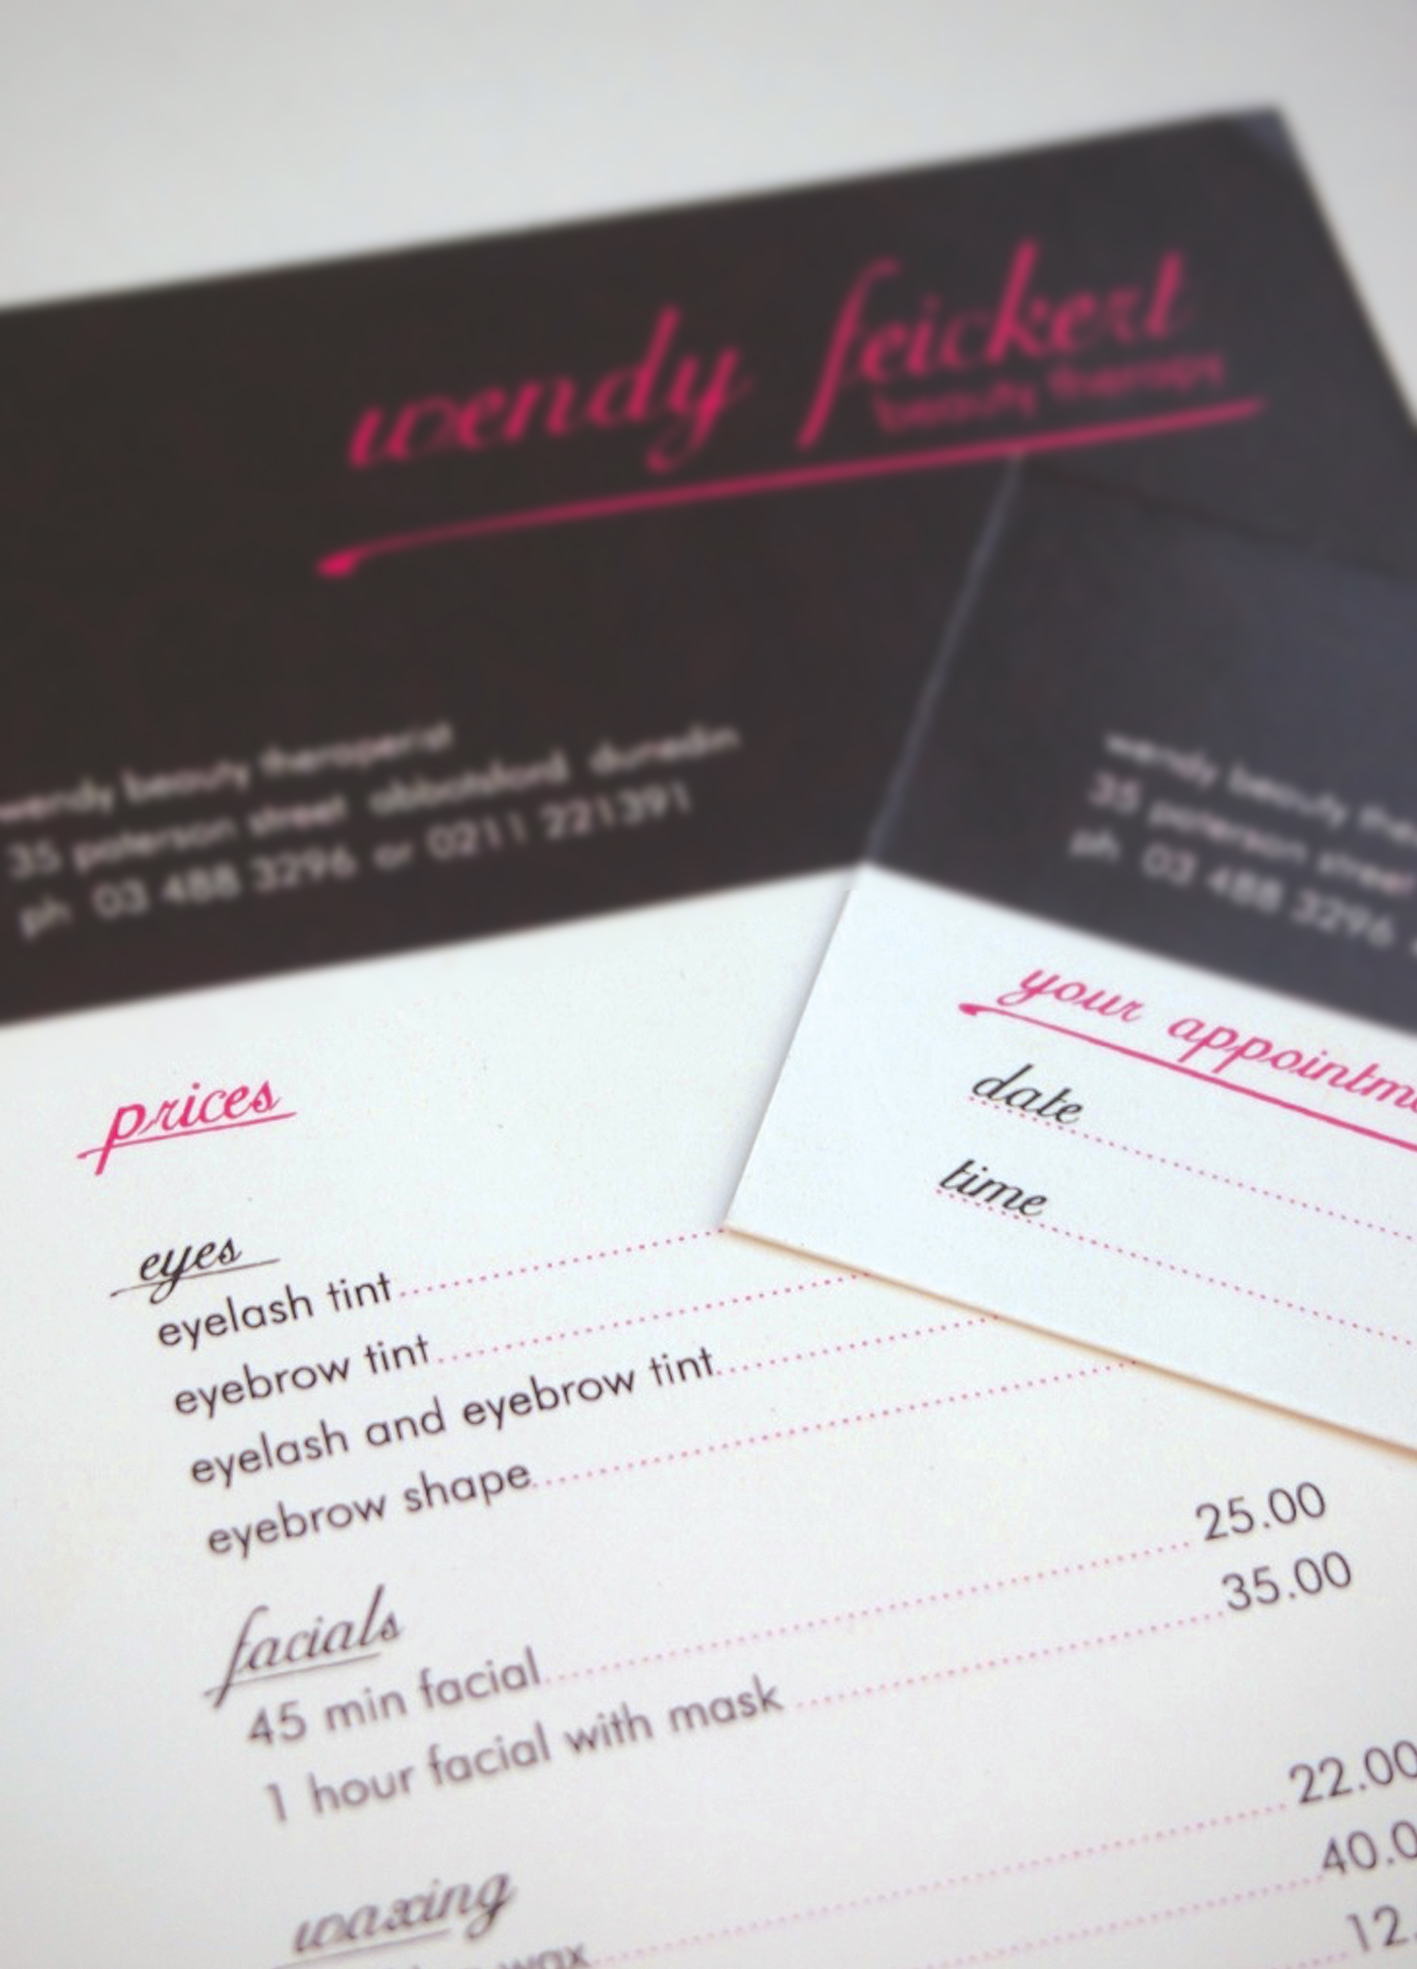 [Price list and business card]